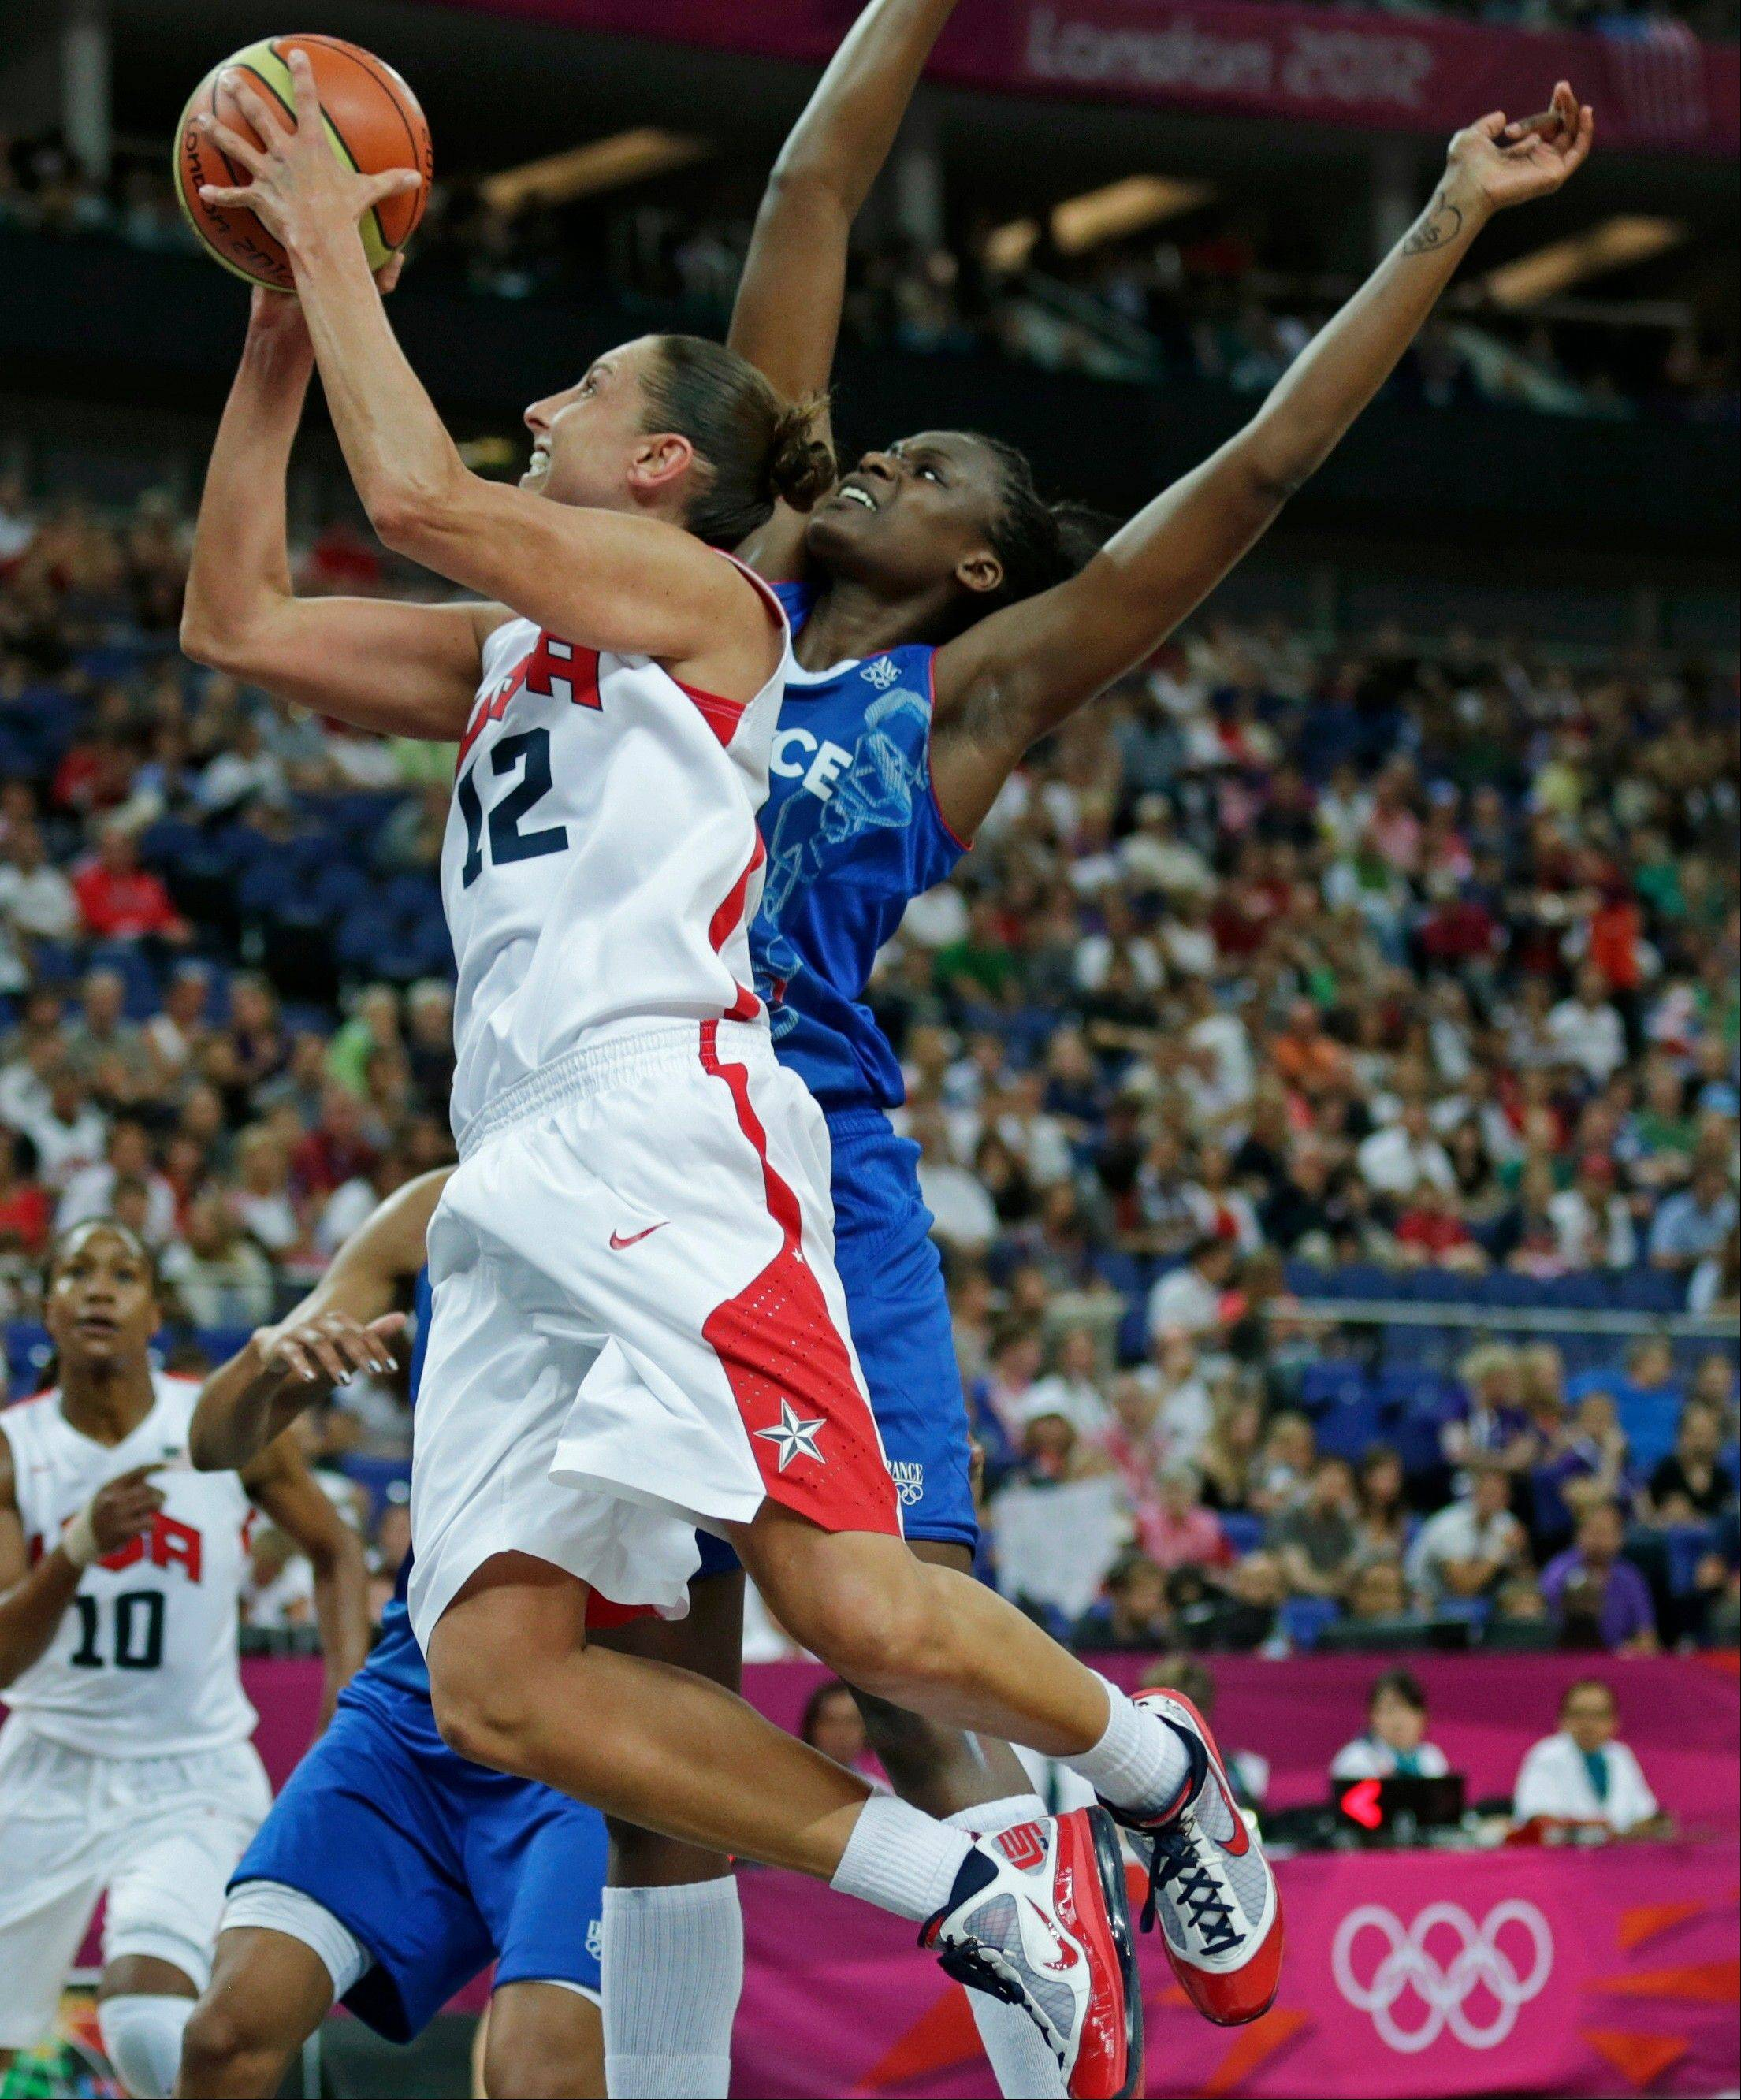 United States' Diana Taurasi (12) drives to the basket against France's Jennifer Digbeu during the women's gold medal basketball game at the 2012 Summer Olympics, Saturday, Aug. 11, 2012, in London.